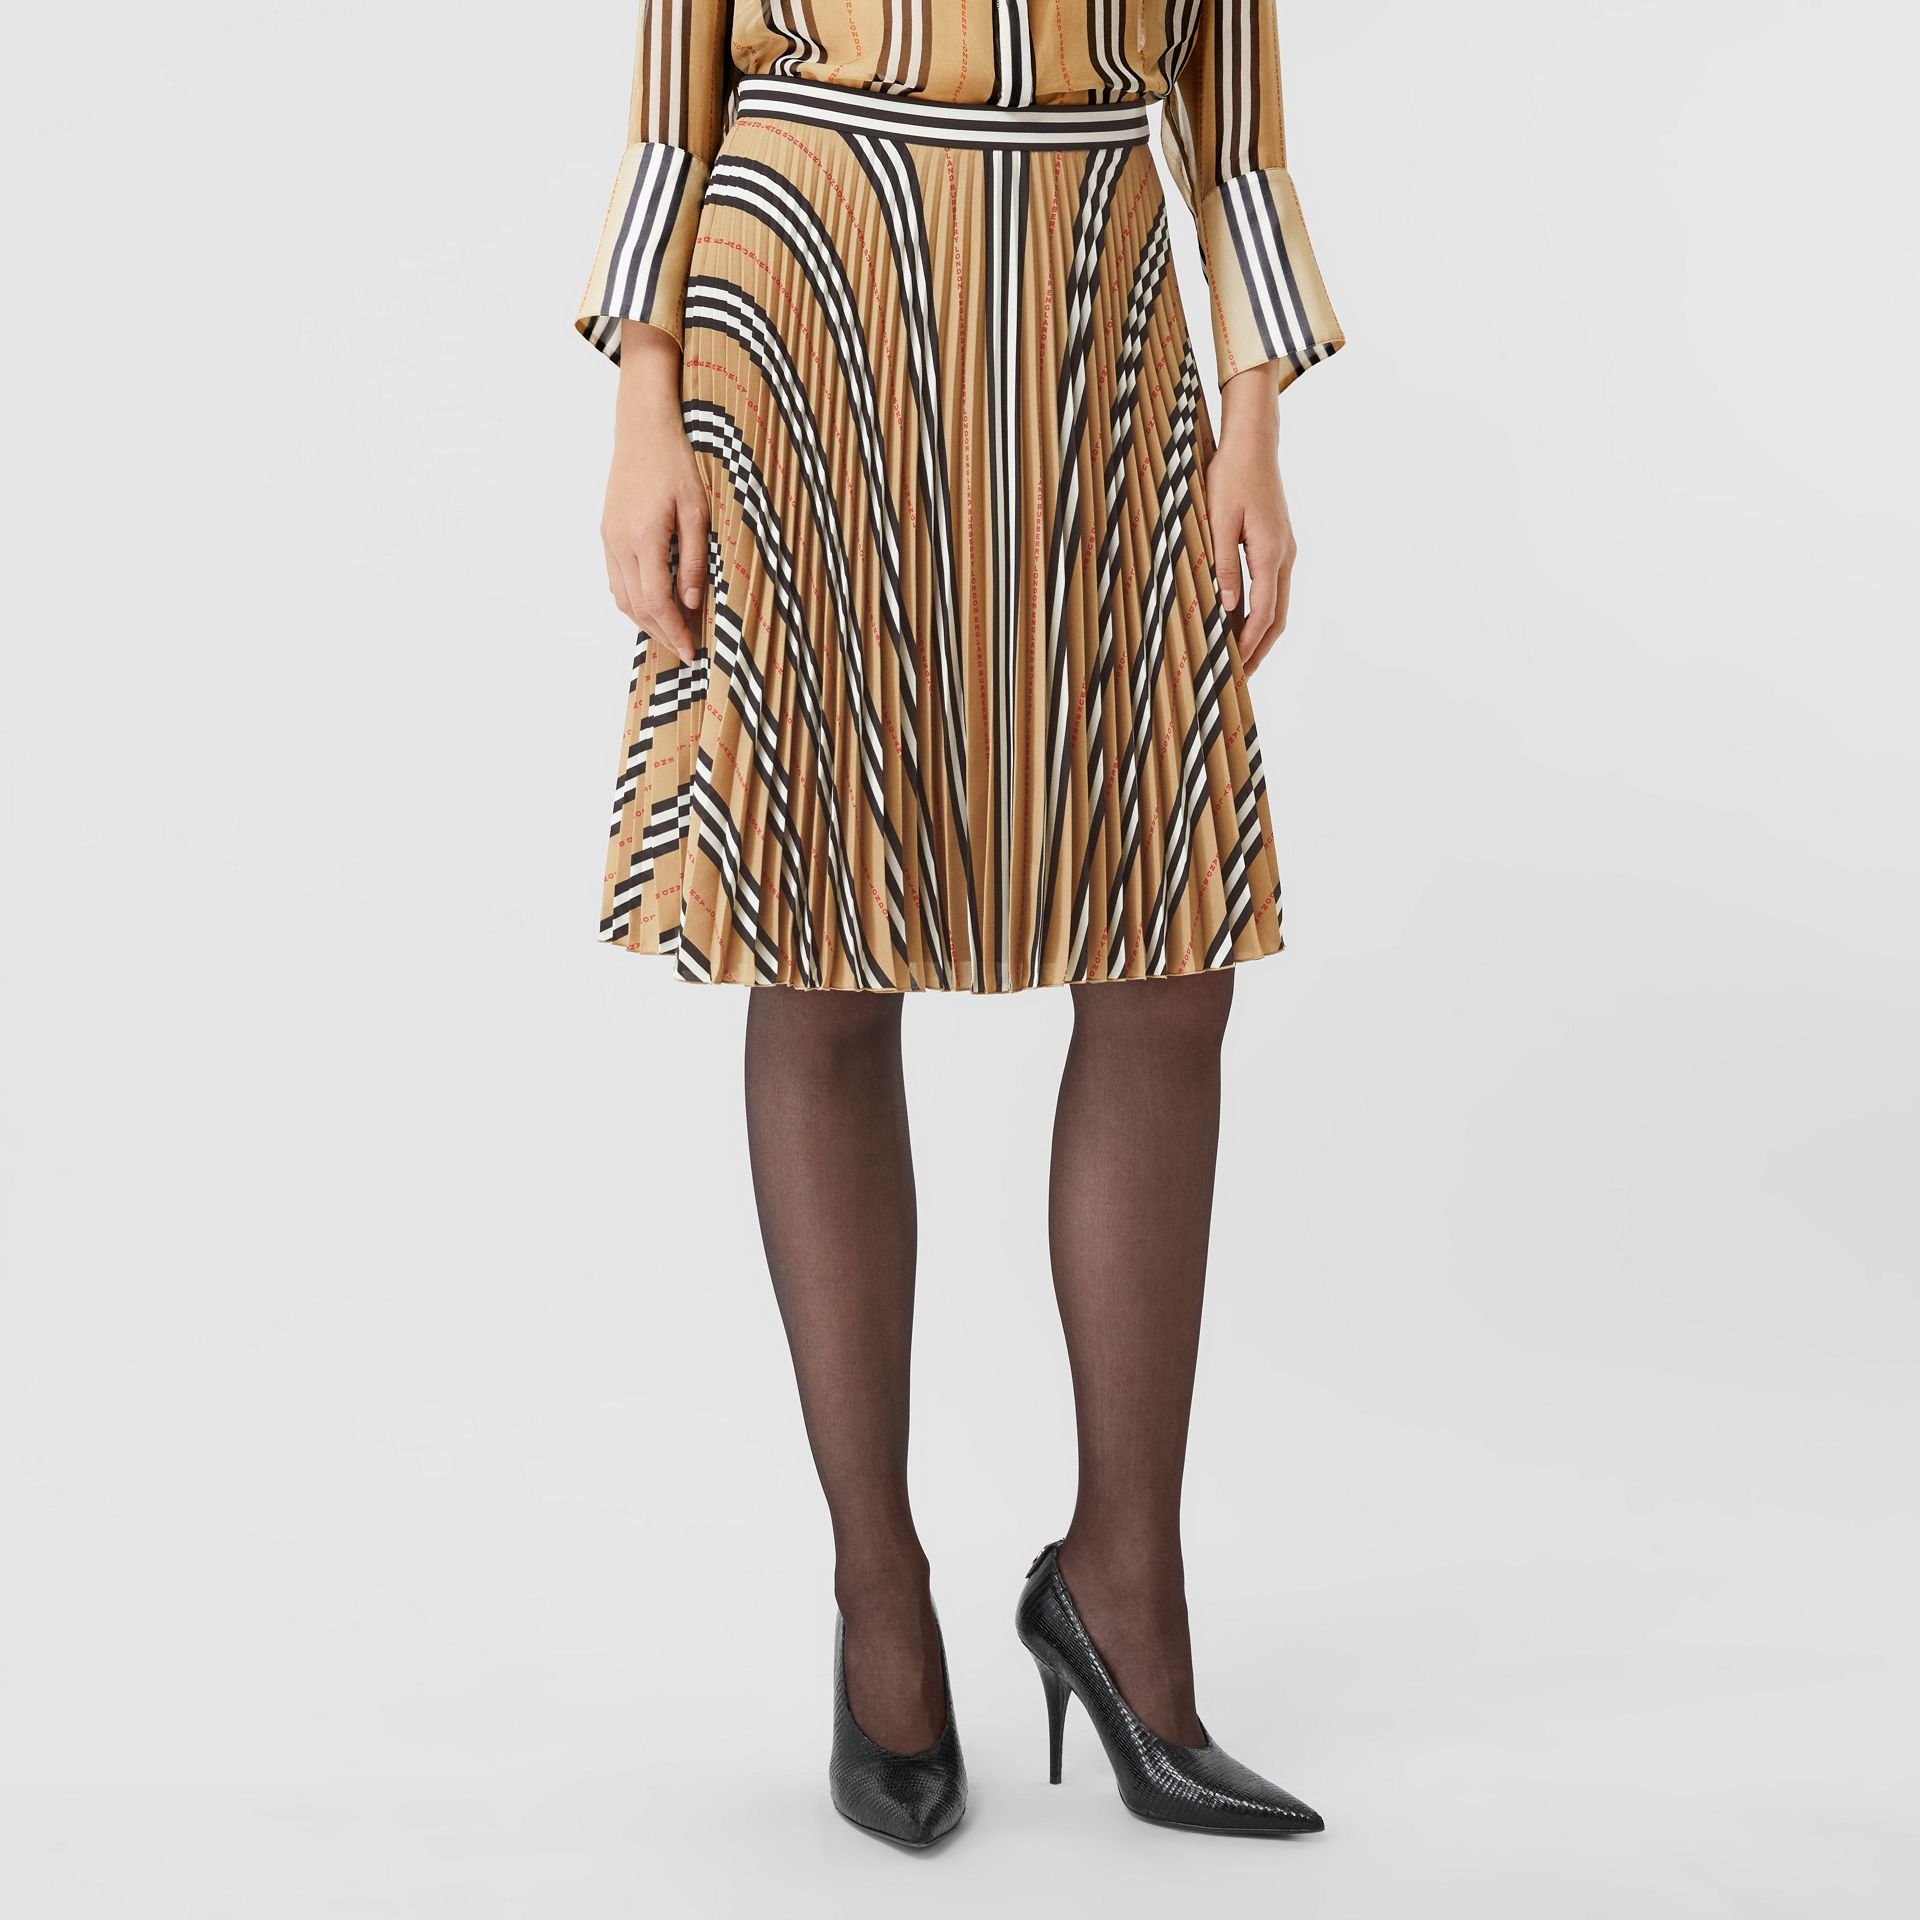 Logo and Stripe Print Crepe Pleated Skirt in Archive Beige - Women | Burberry Canada - gallery image 4